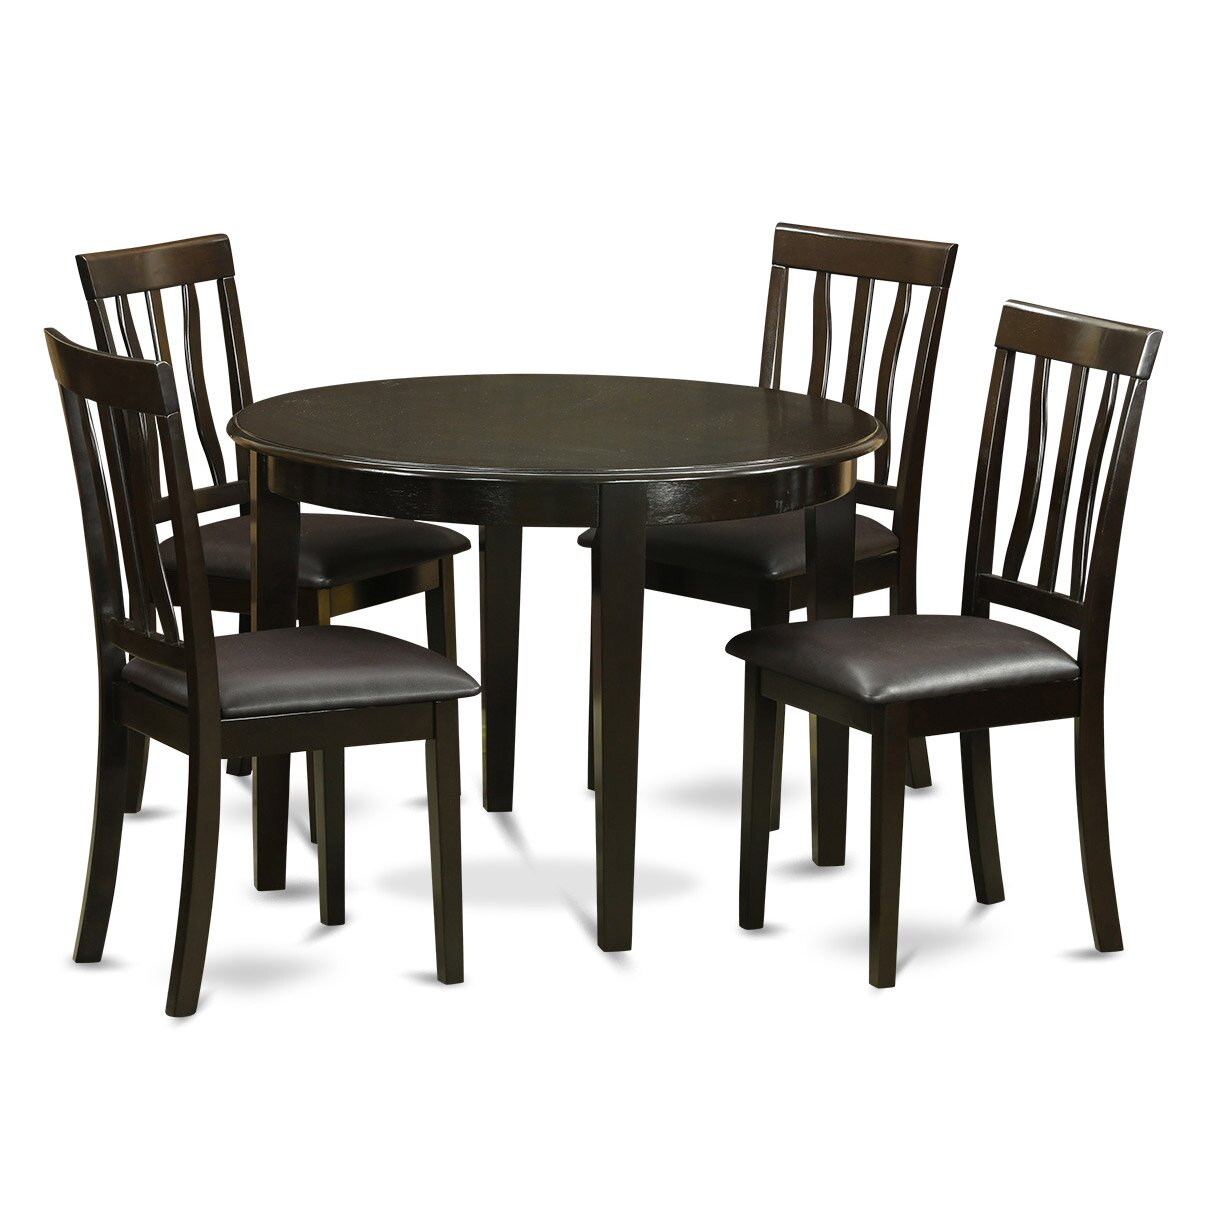 Wooden importers boston 5 piece dining set wayfair for Small round wood kitchen table